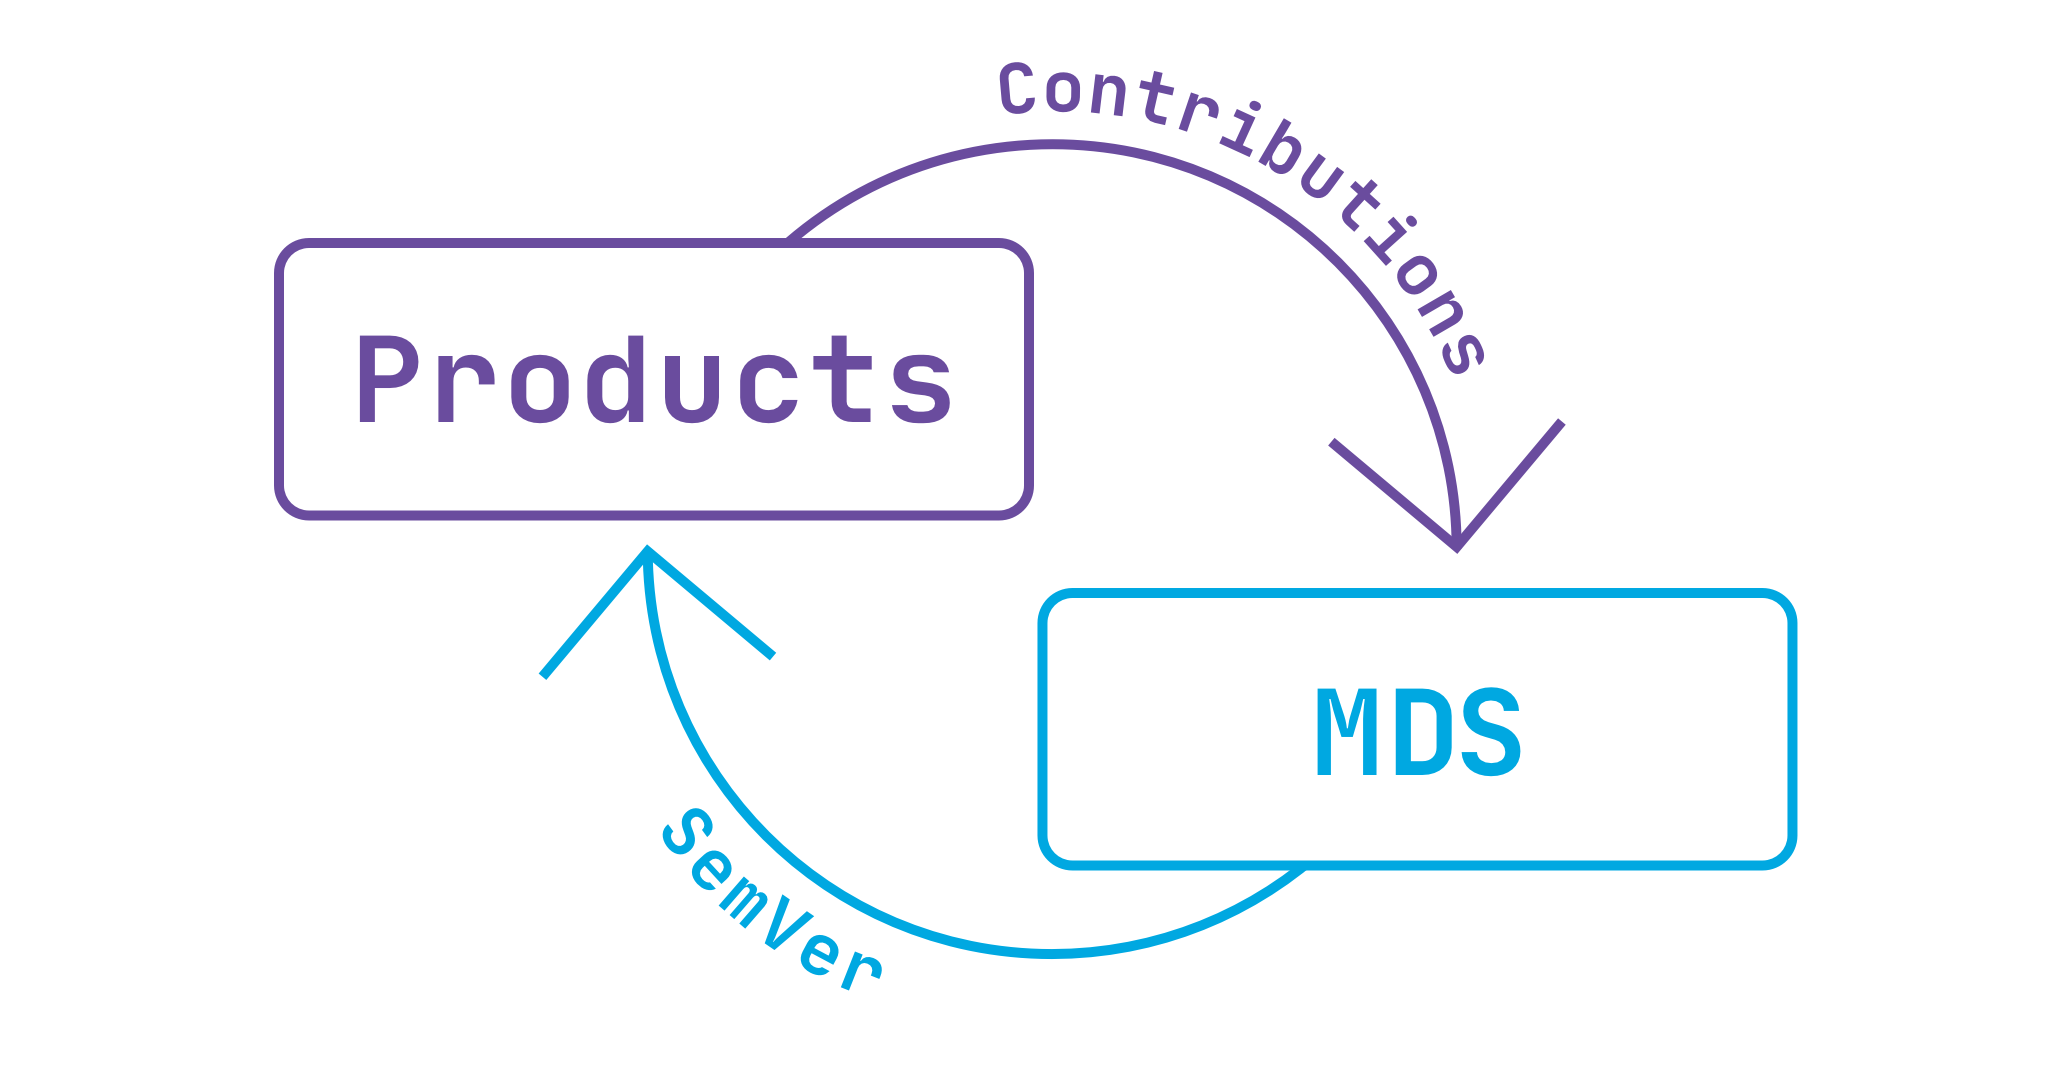 Diagram of contributions flowing from products to MDS, and semantically versioned components flowing from MDS to products